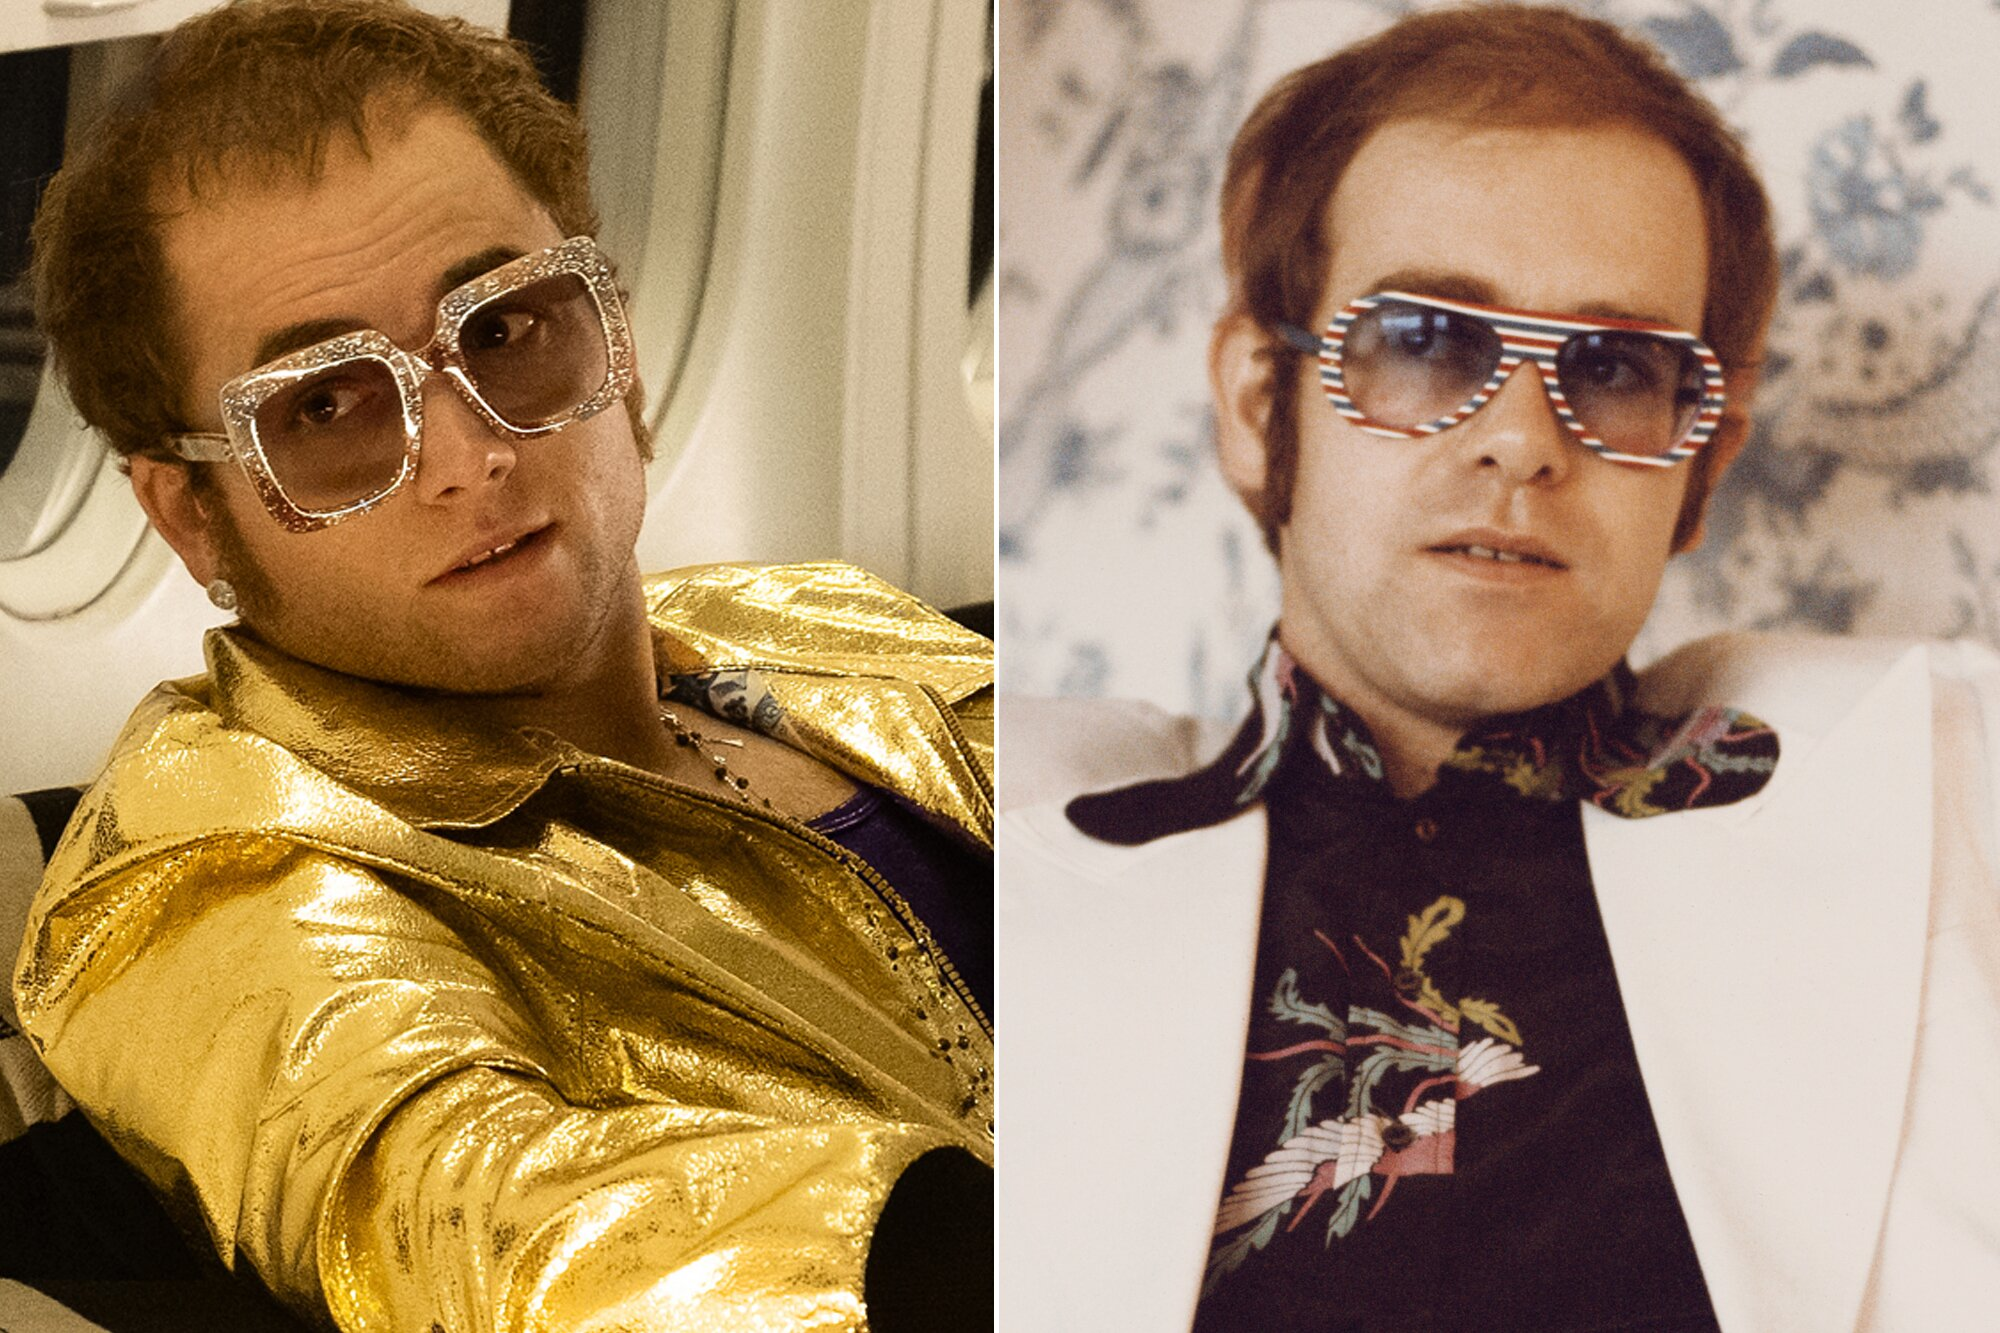 Rocketman Subject Elton John Says Studios Wanted Less Sex And